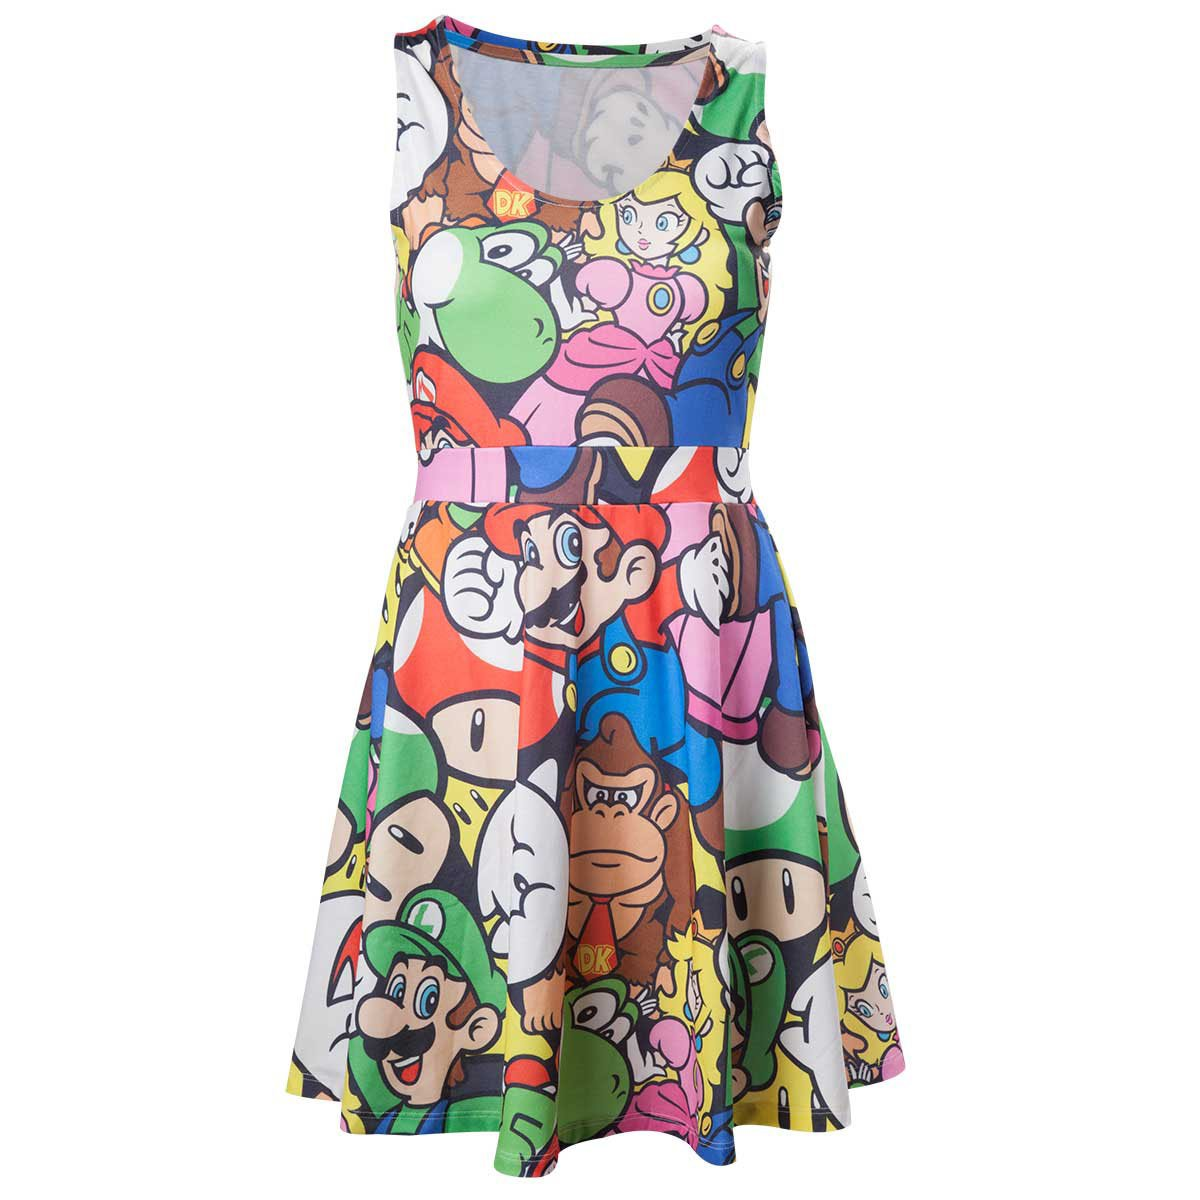 Mario Dress (Gaming)